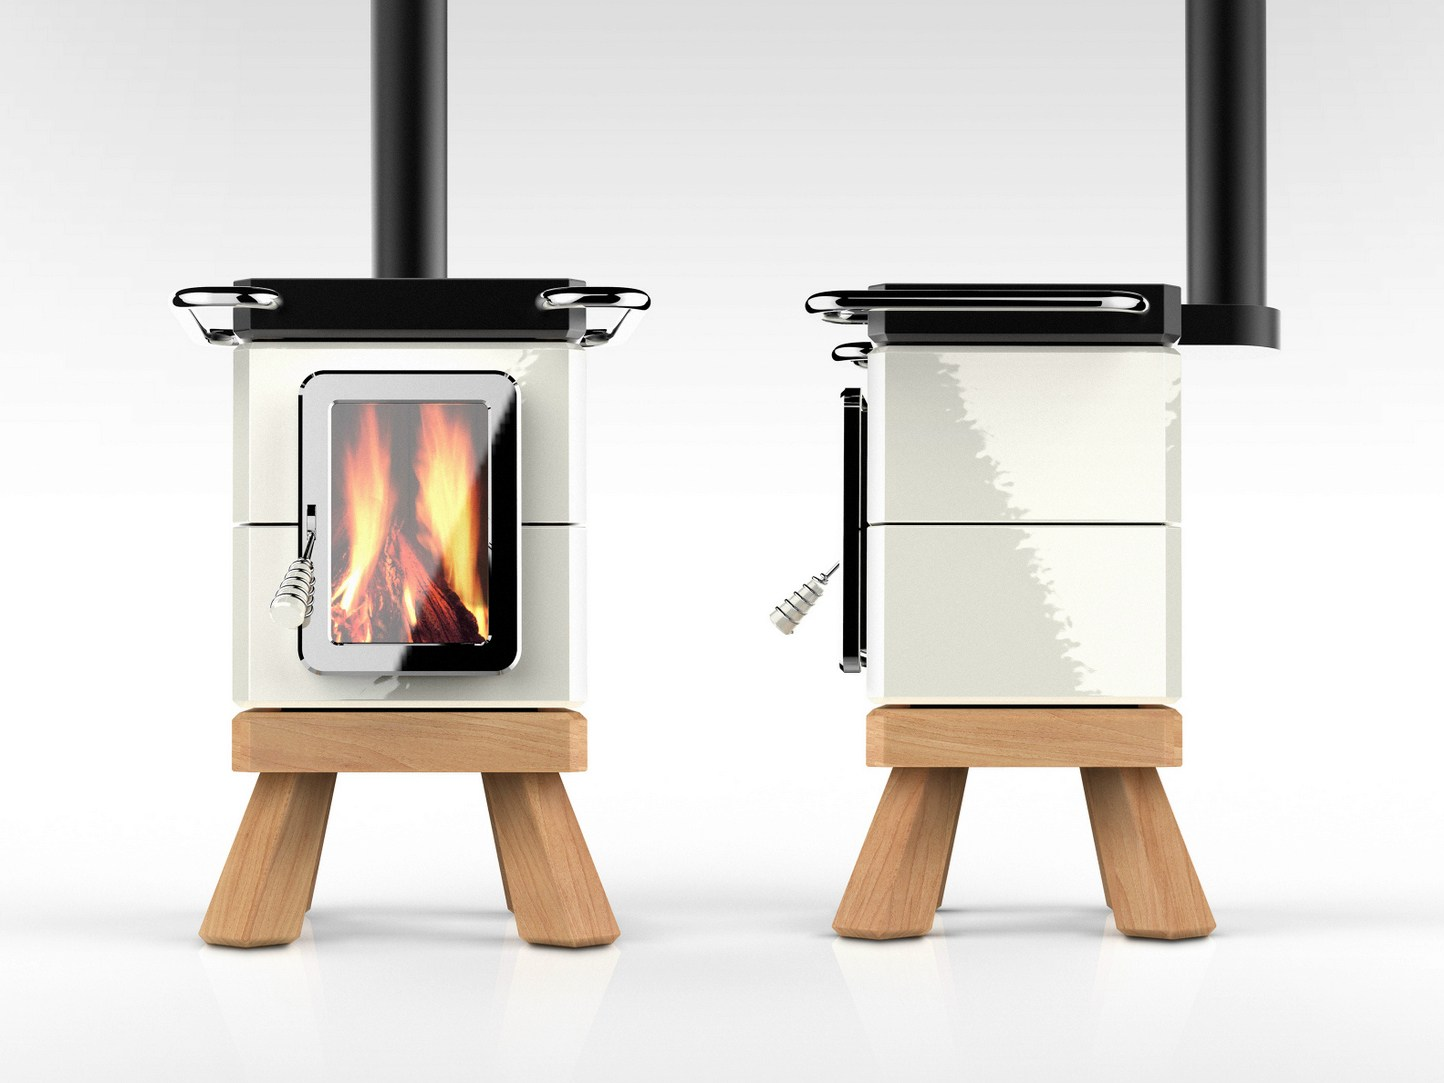 Wood burning ceramic stove with oven cookinstack by la - Stufe a legna design ...